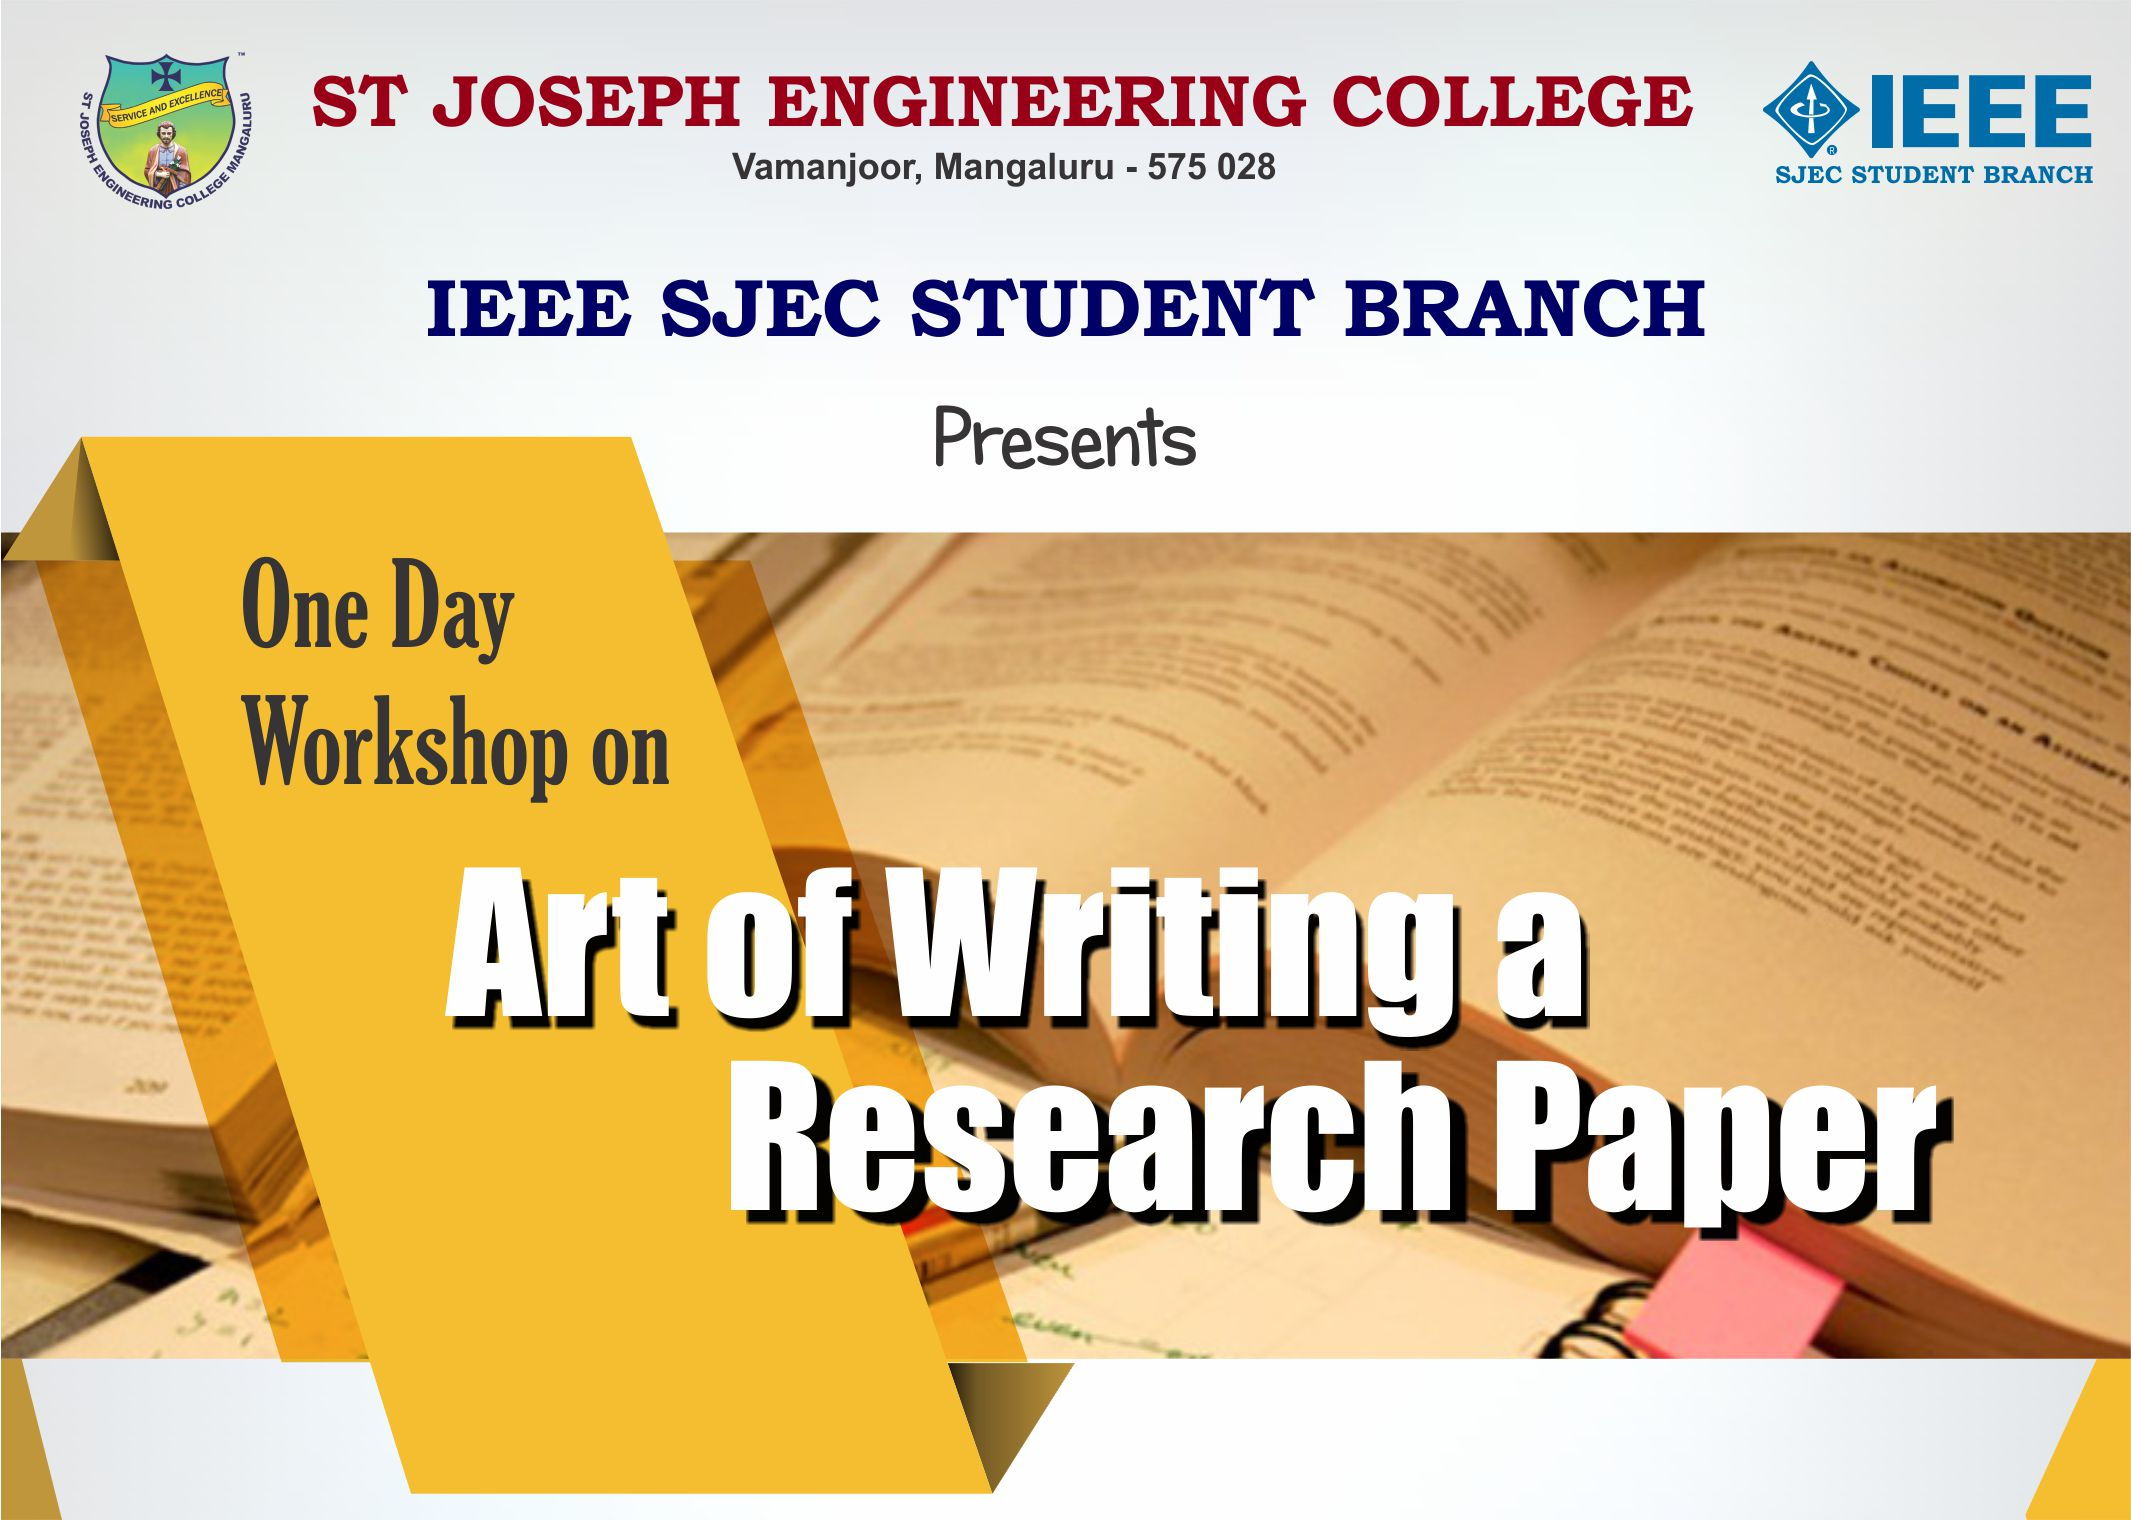 011 Workshop Banner Research Paper Striking Writing Papers A Complete Guide 16th Edition Pdf 15th Full